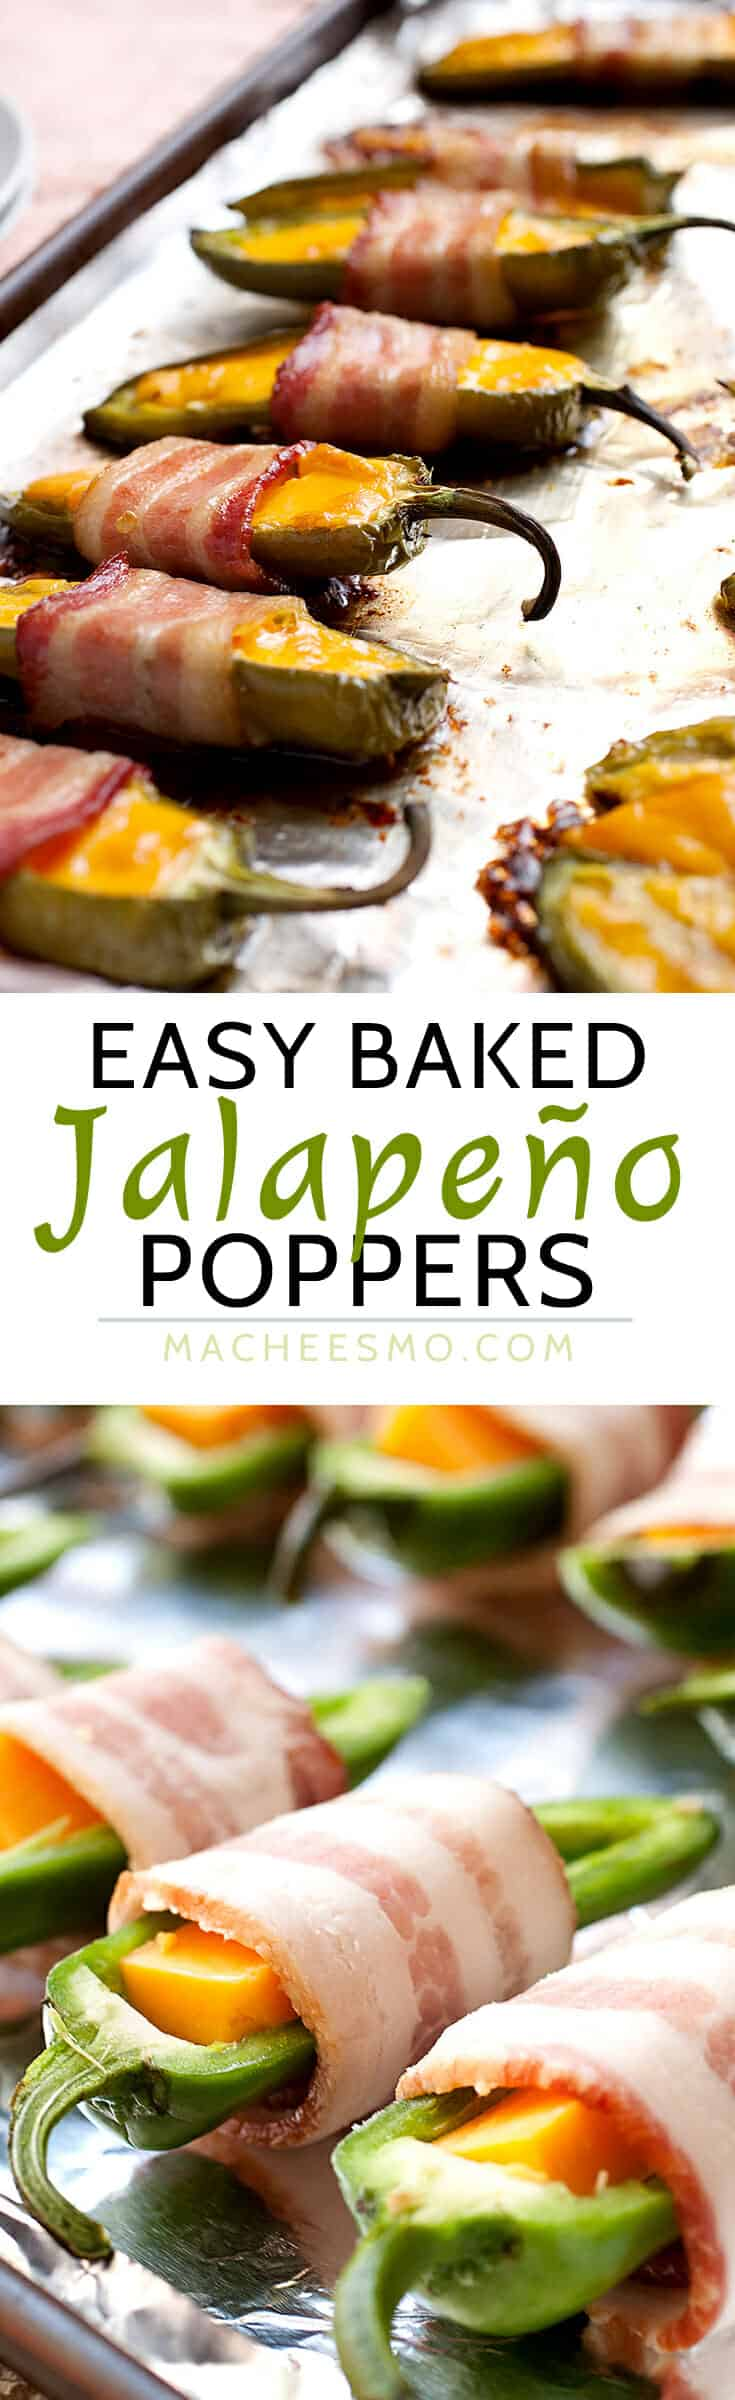 Three Ingredient Baked Jalapeño Poppers: These little guys are easy to make and SO addictive. Make a big batch of these for your next game day celebration and try not to eat them all yourself! | macheesmo.com